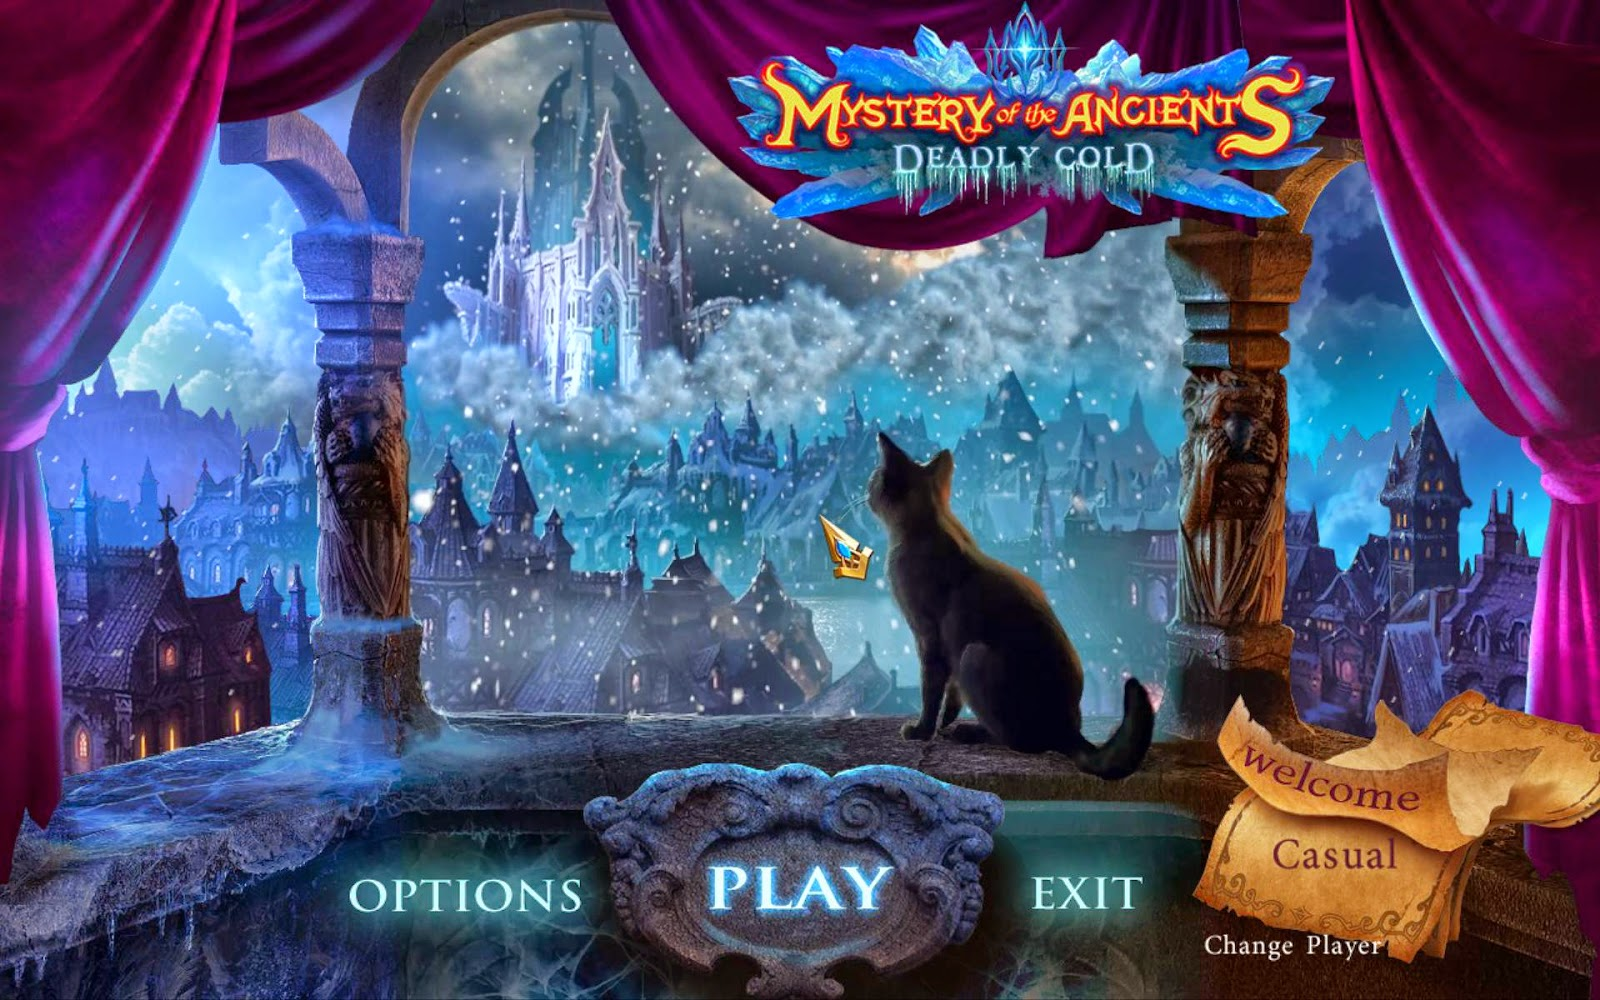 http://trusted.md/blog/game/2014/11/28/mystery_of_the_ancients_4_deadly_cold_collectors_edition_free_download_pc_game